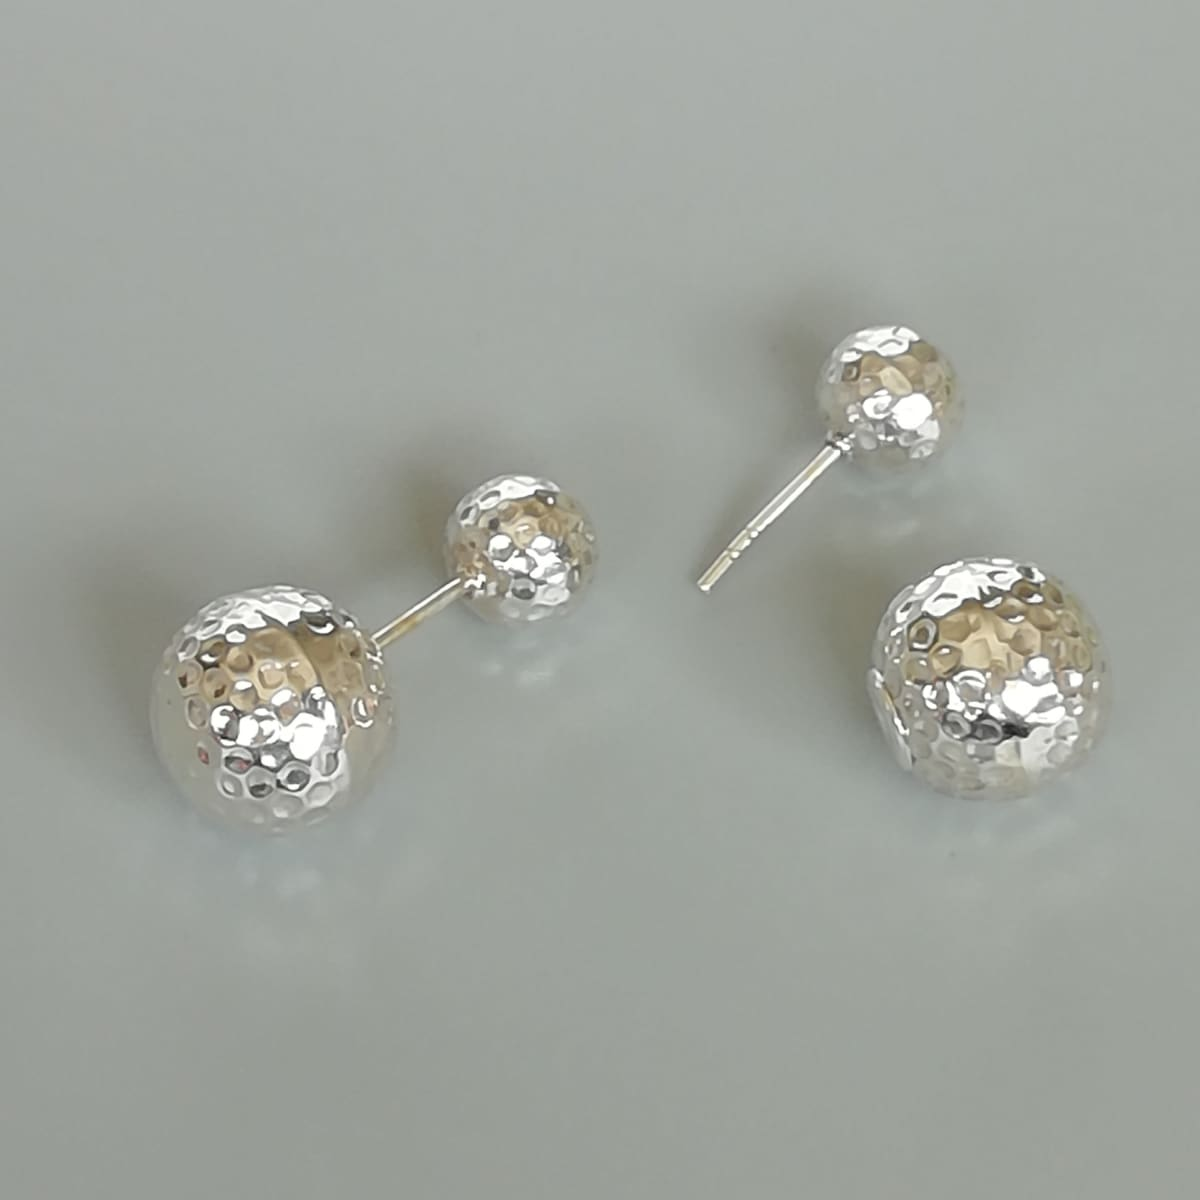 Earrings Double sided sterling silver ball studs | Stunning ear | Ball cartilage | Silver jewelry | Bohemian earrings | E658 - by